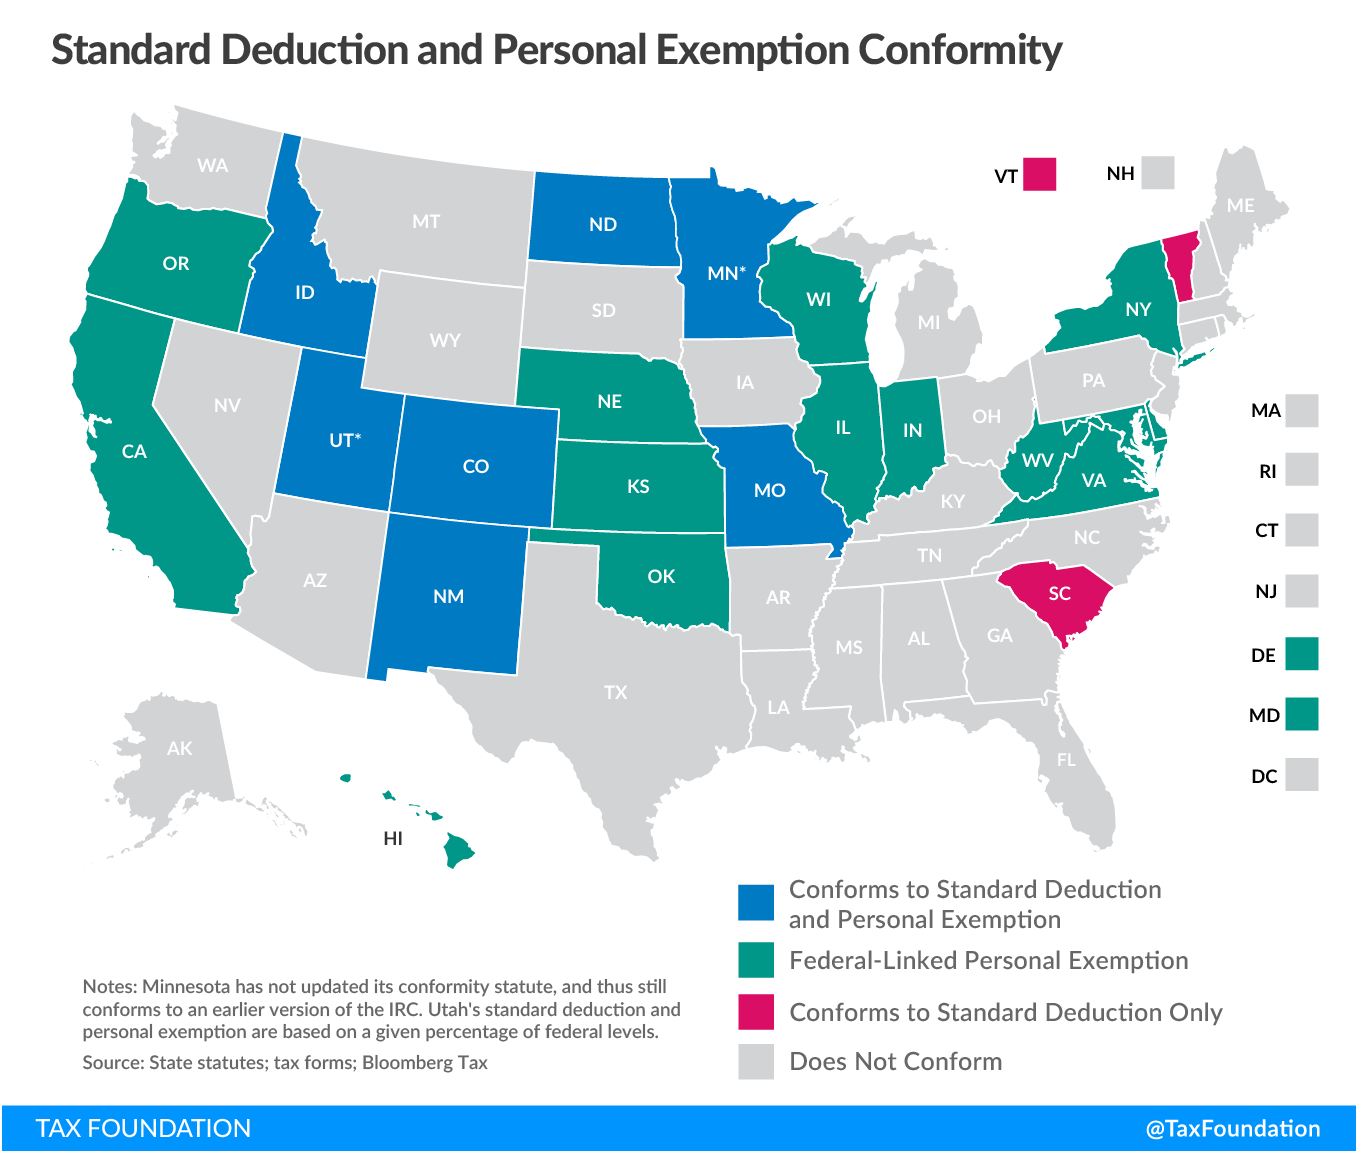 Standard deduction and personal exemption conformity post-TCJA